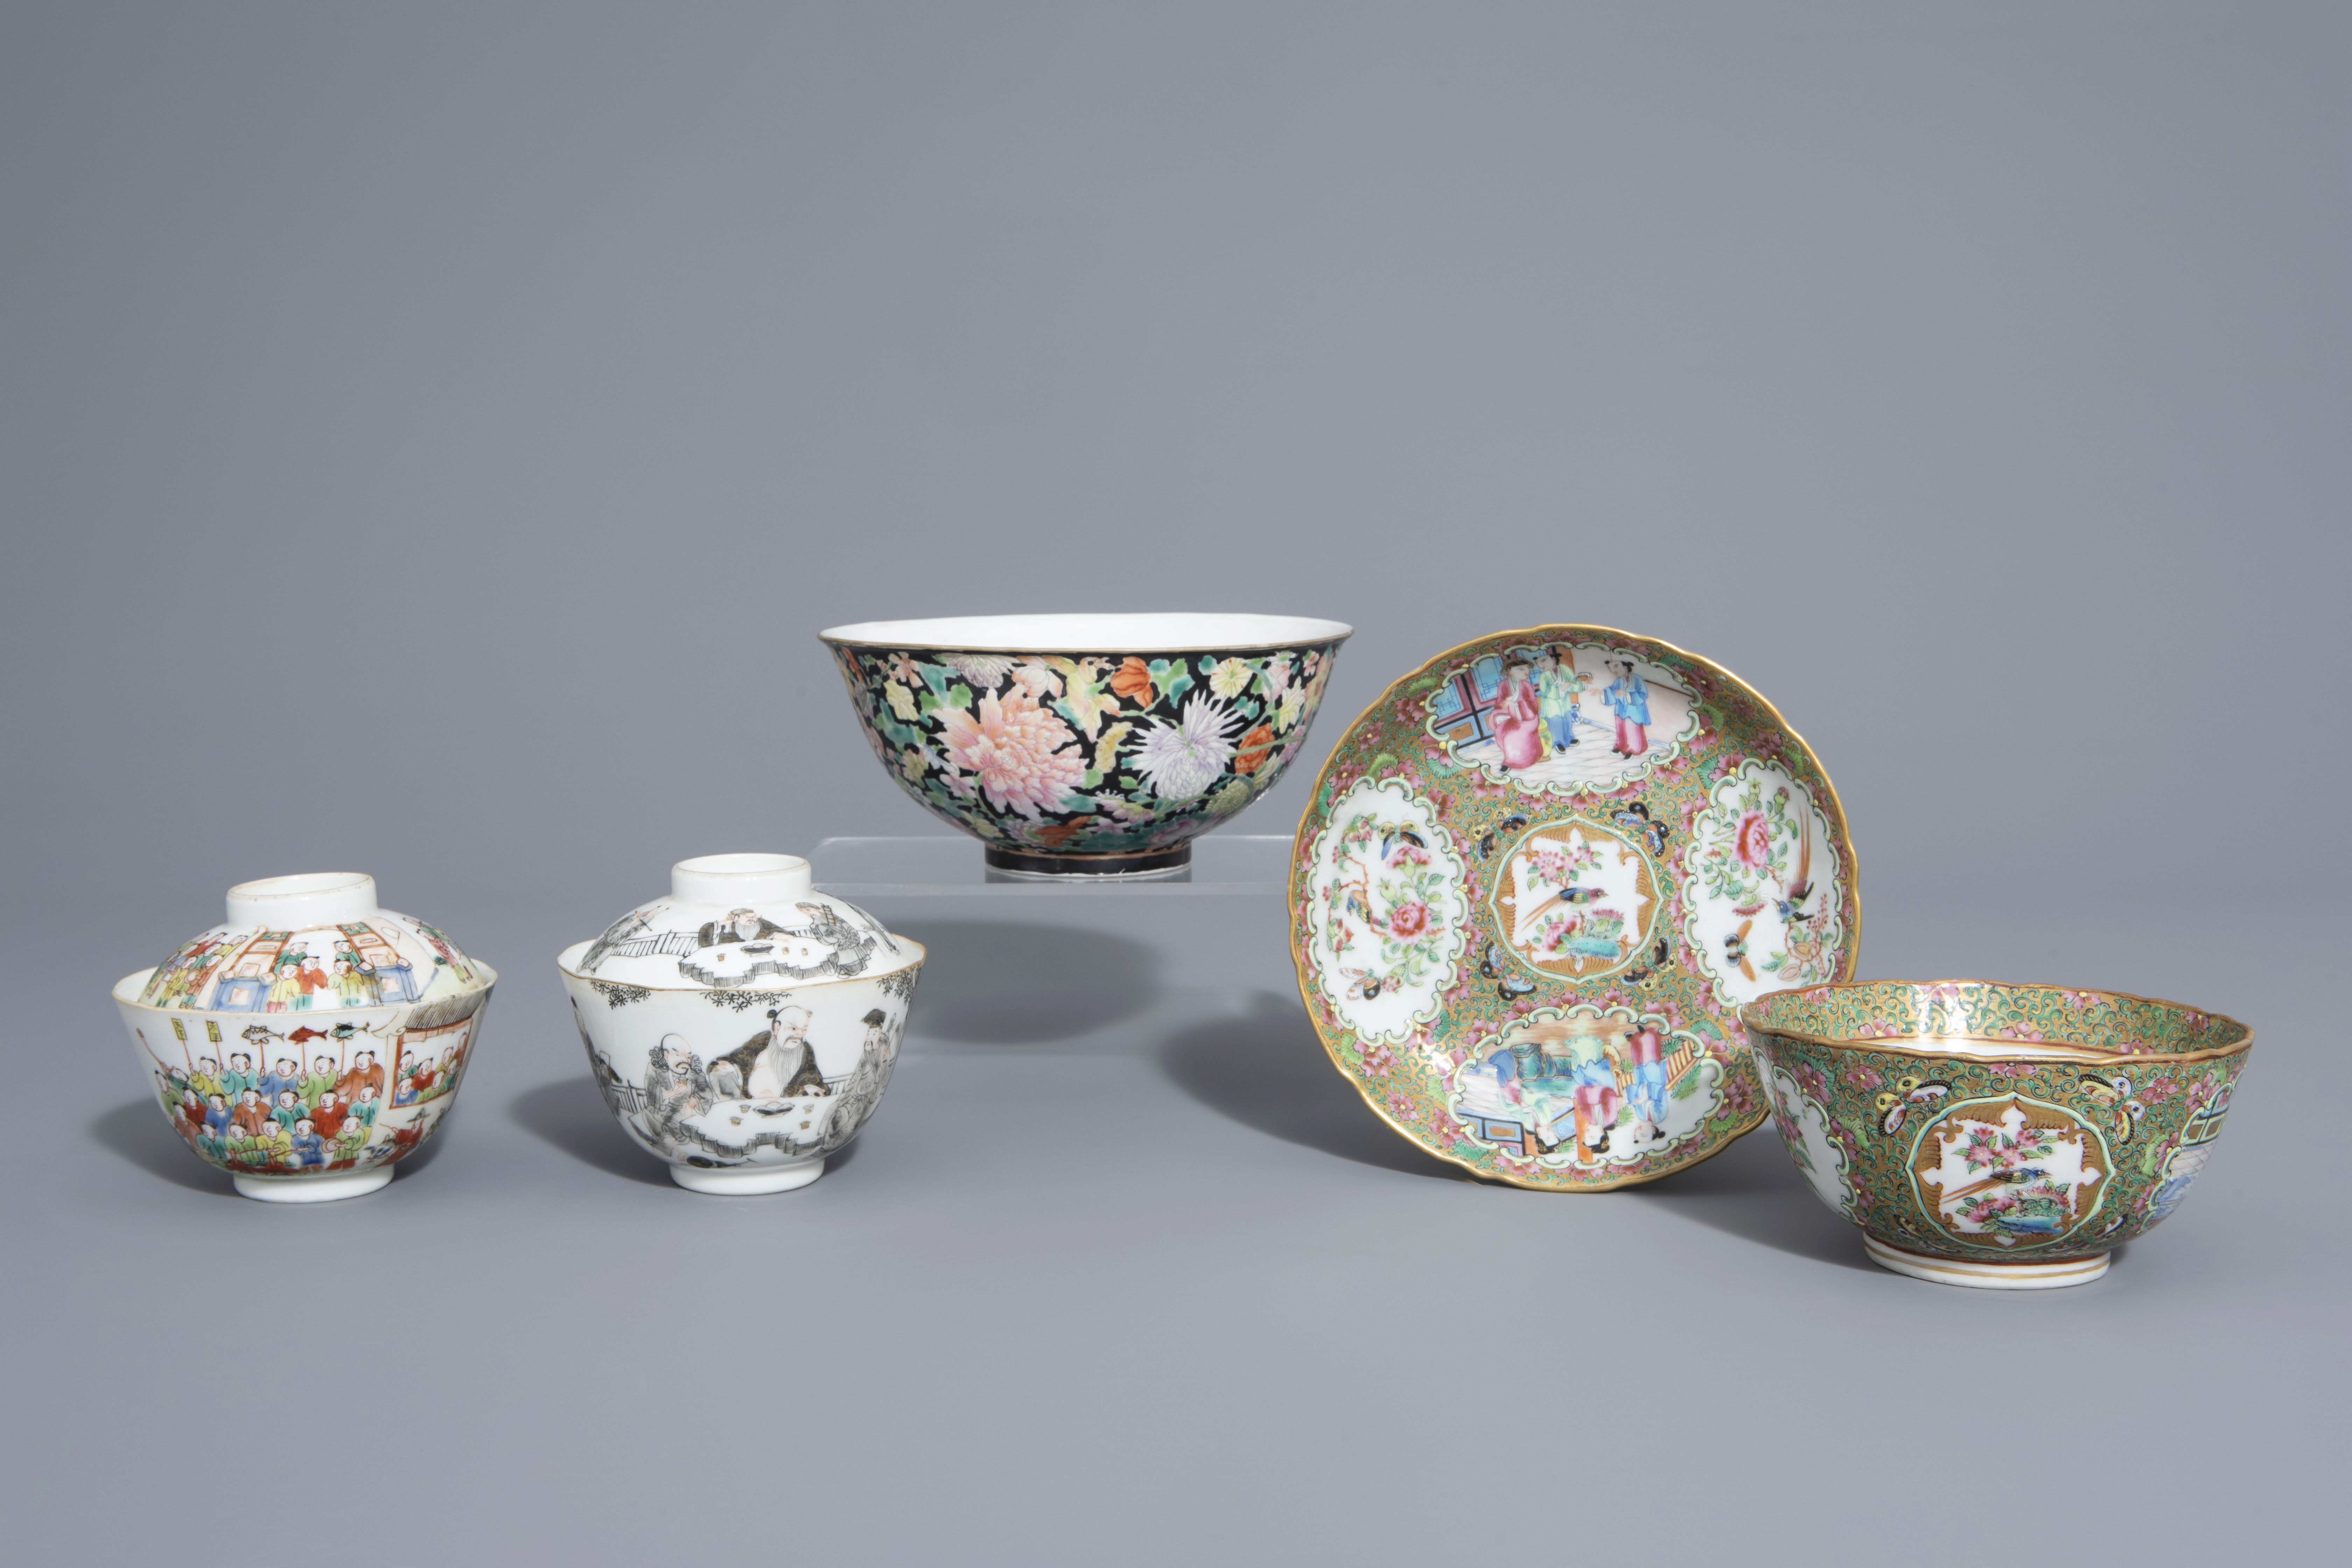 Three Chinese famille rose and grisaille bowls and a Canton bowl on stand, 19th/20th C.